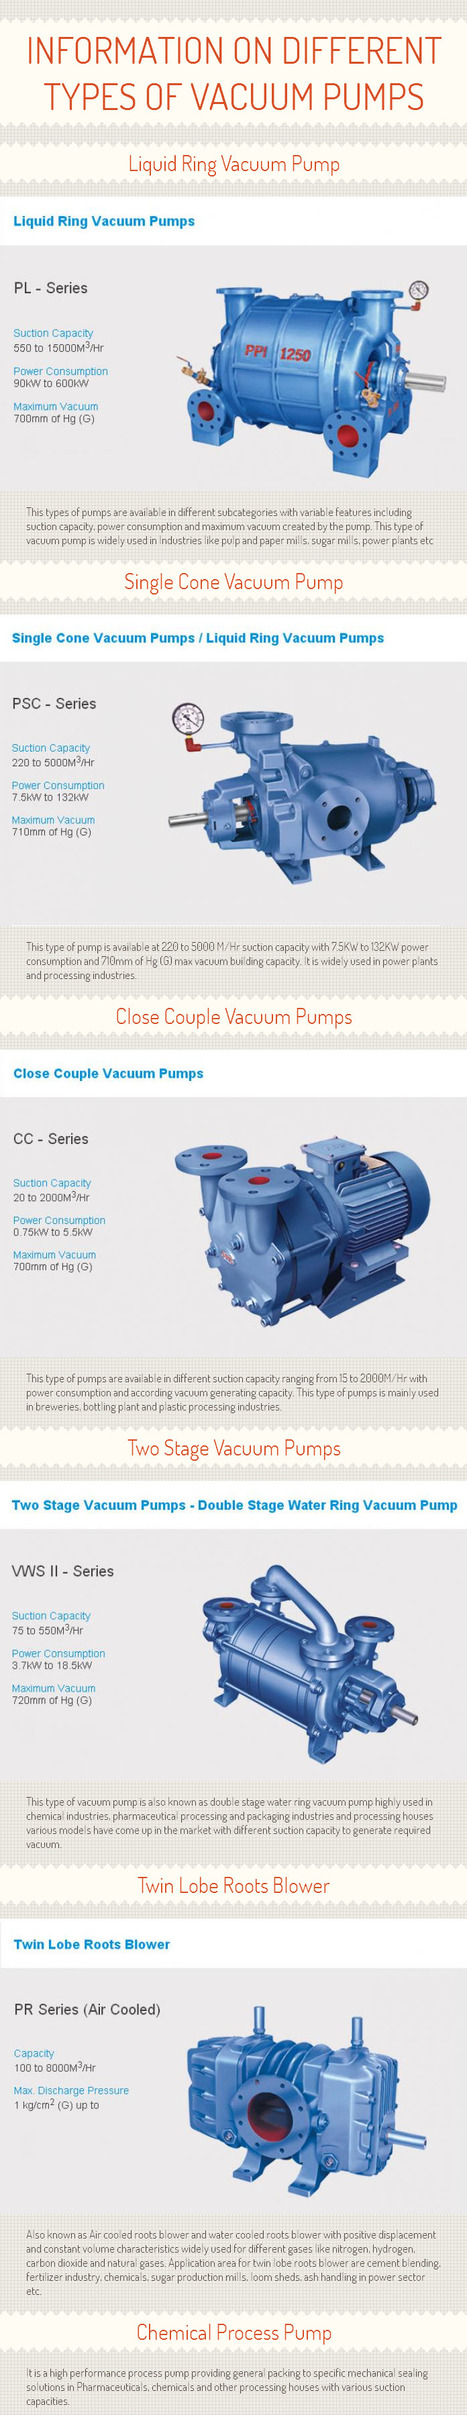 Information on Different Types of Vacuum Pumps [INFOGRAPH] | PPI Pumps Pvt. Ltd. | Scoop.it